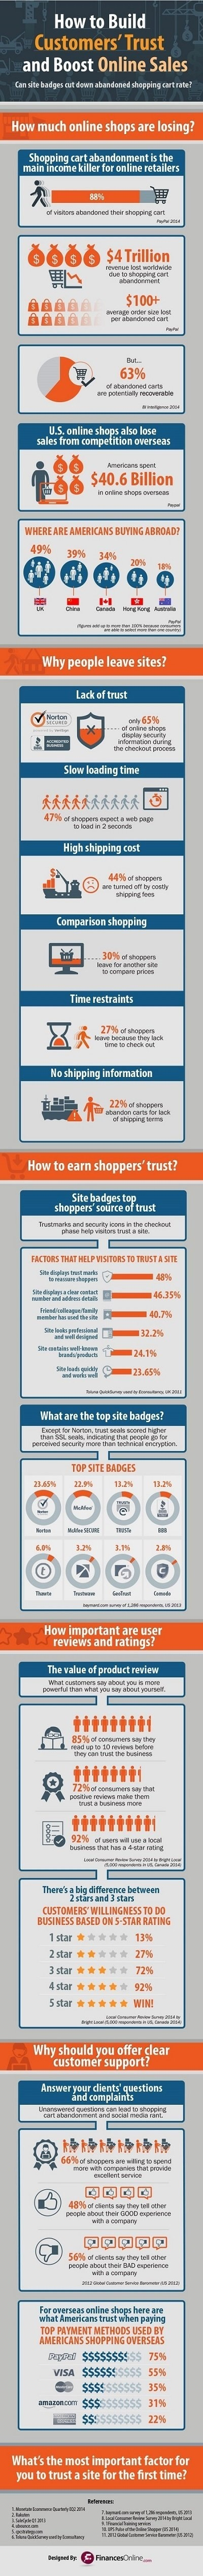 How to Build Customers' Trust and Boost Online Sales [Infographic] | Integrated Brand Communications | Scoop.it